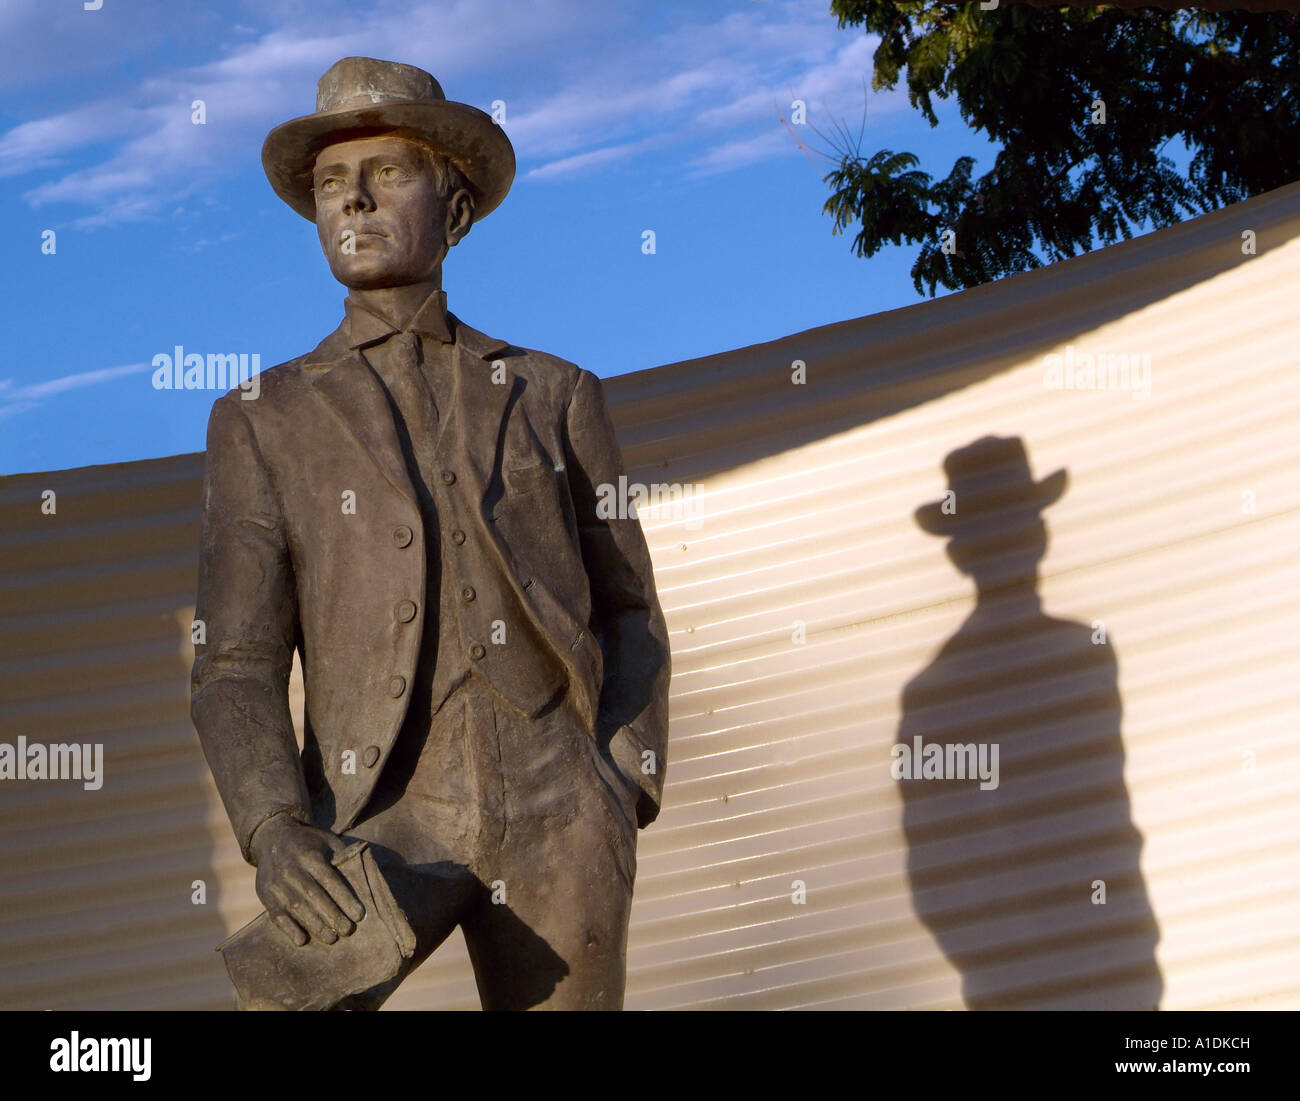 Statue of Australian poet Banjo Patterson, at Winton, Queensland. He wrote Waltzing Matilda,  photo by Bruce Miller - Stock Image